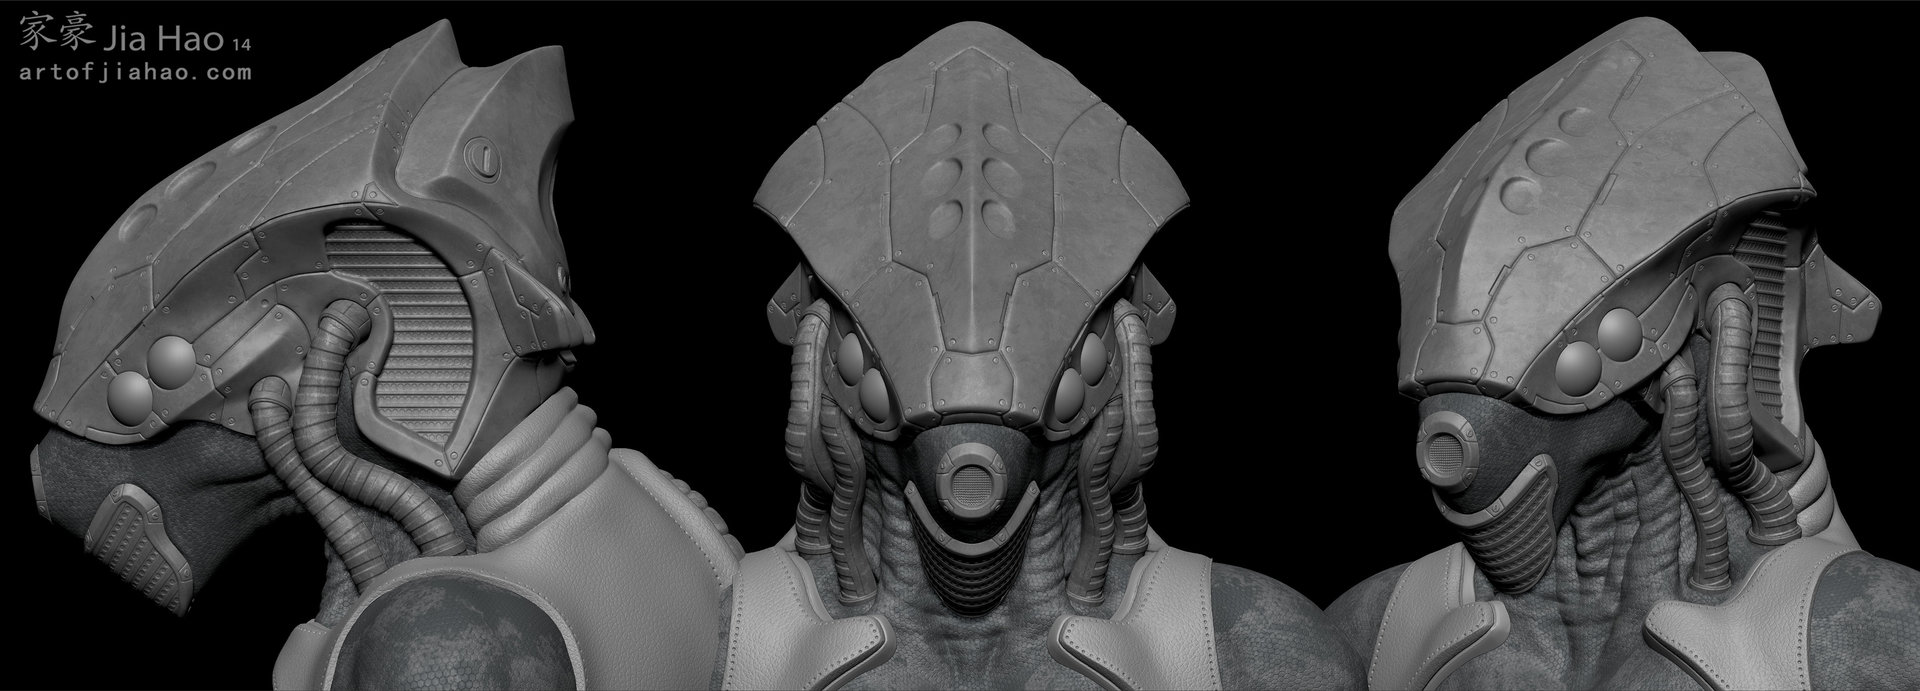 Jia hao 2014 02 alien helmet bust 01 views sculpt